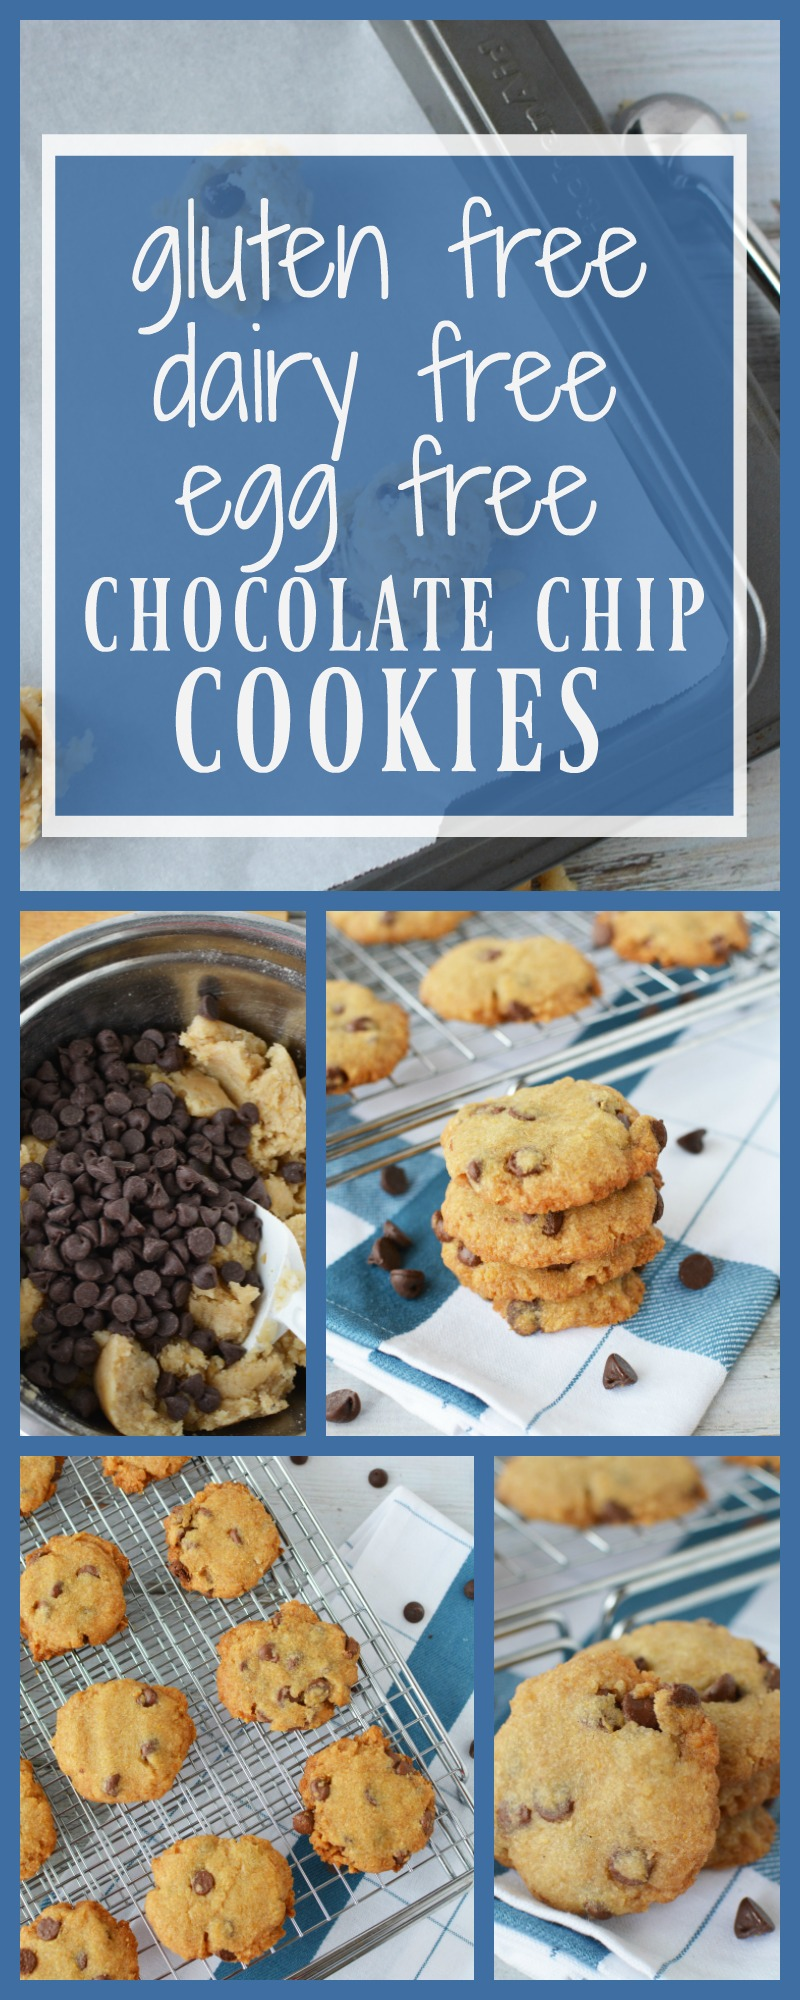 Gluten Free egg free chocolate chip cookies|RIpped Jeans and Bifocals